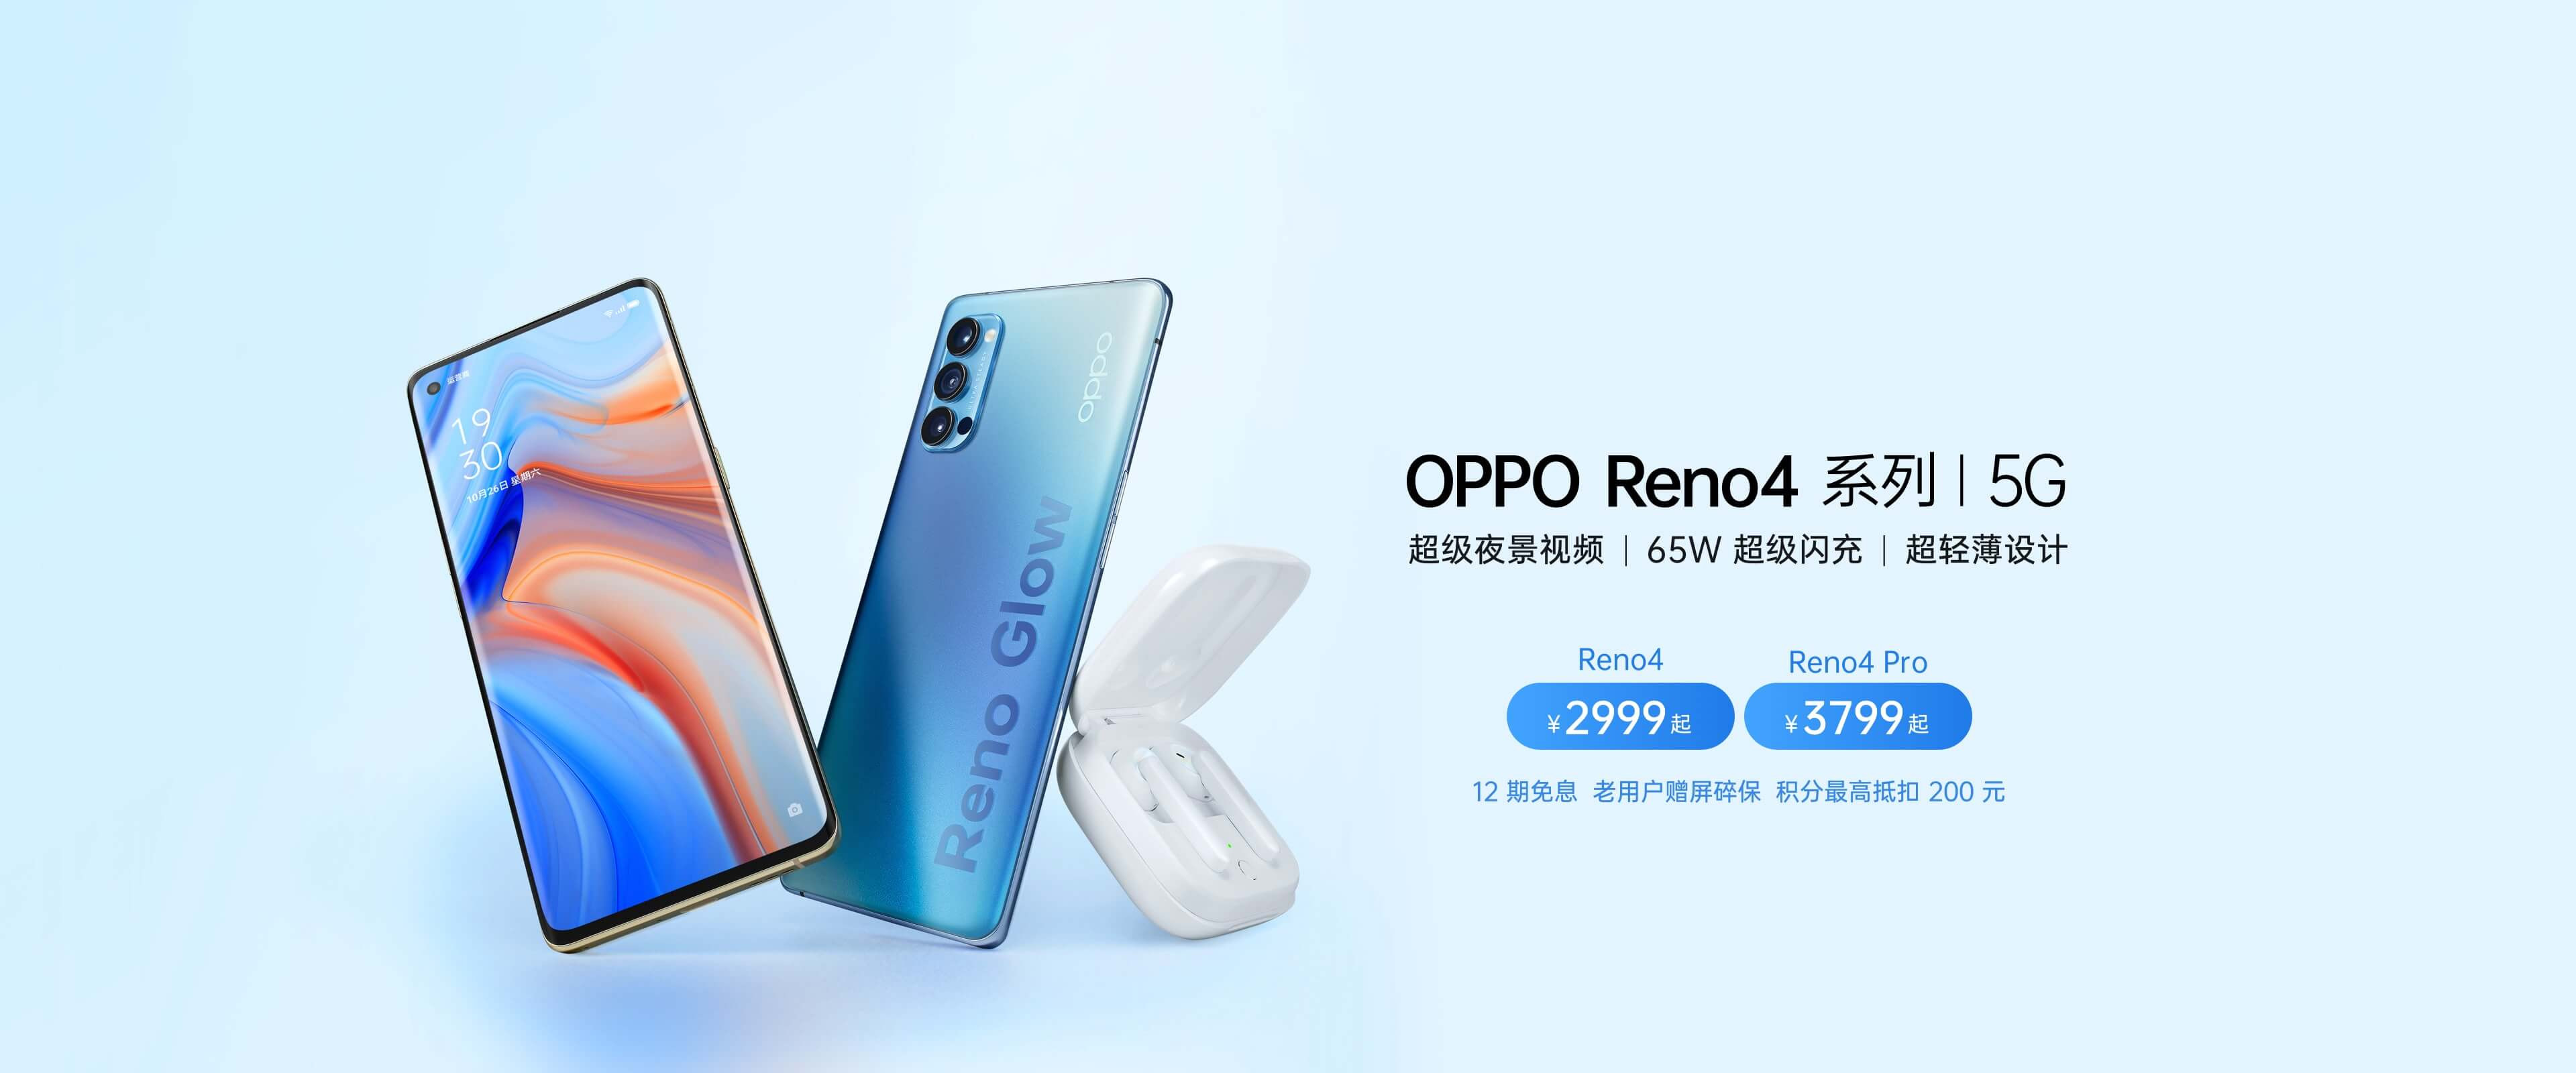 Oppo Reno 4 and Reno 4 Pro Announced | Snapdragon 765G, 65W Fast Charging, & Thin Form Factor